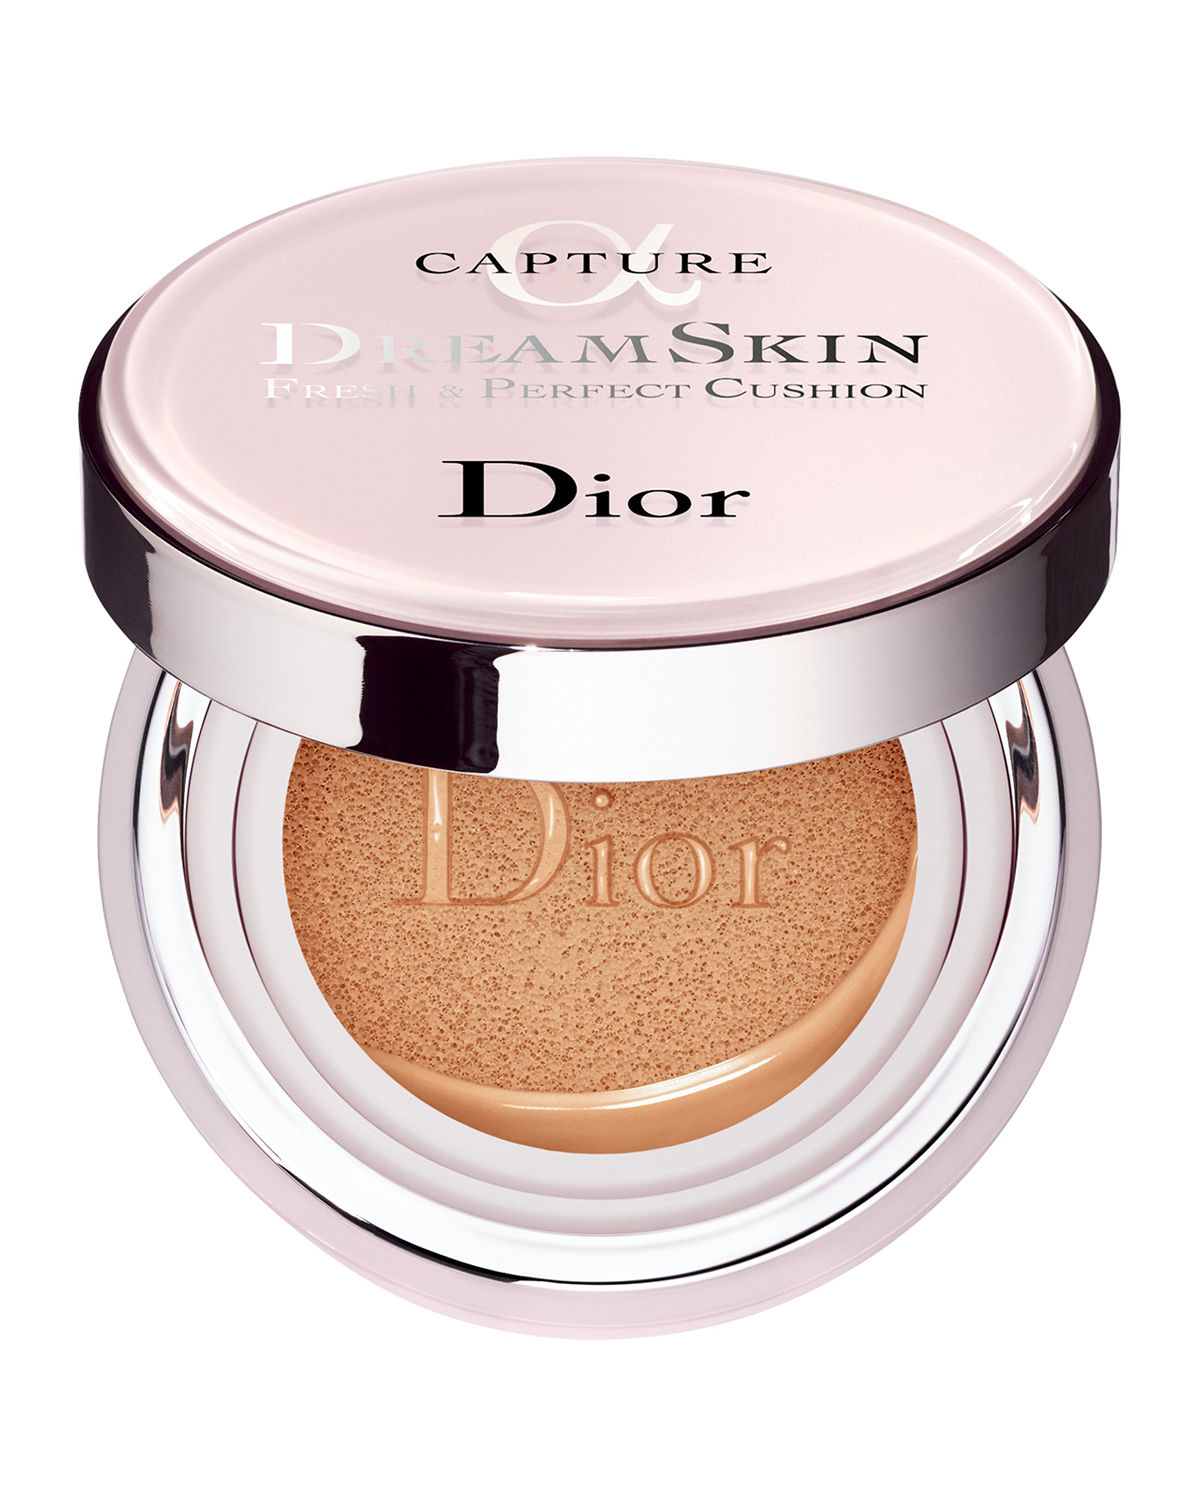 Dreamskin Fresh + Perfect Cushion Mousse Foundation Compact